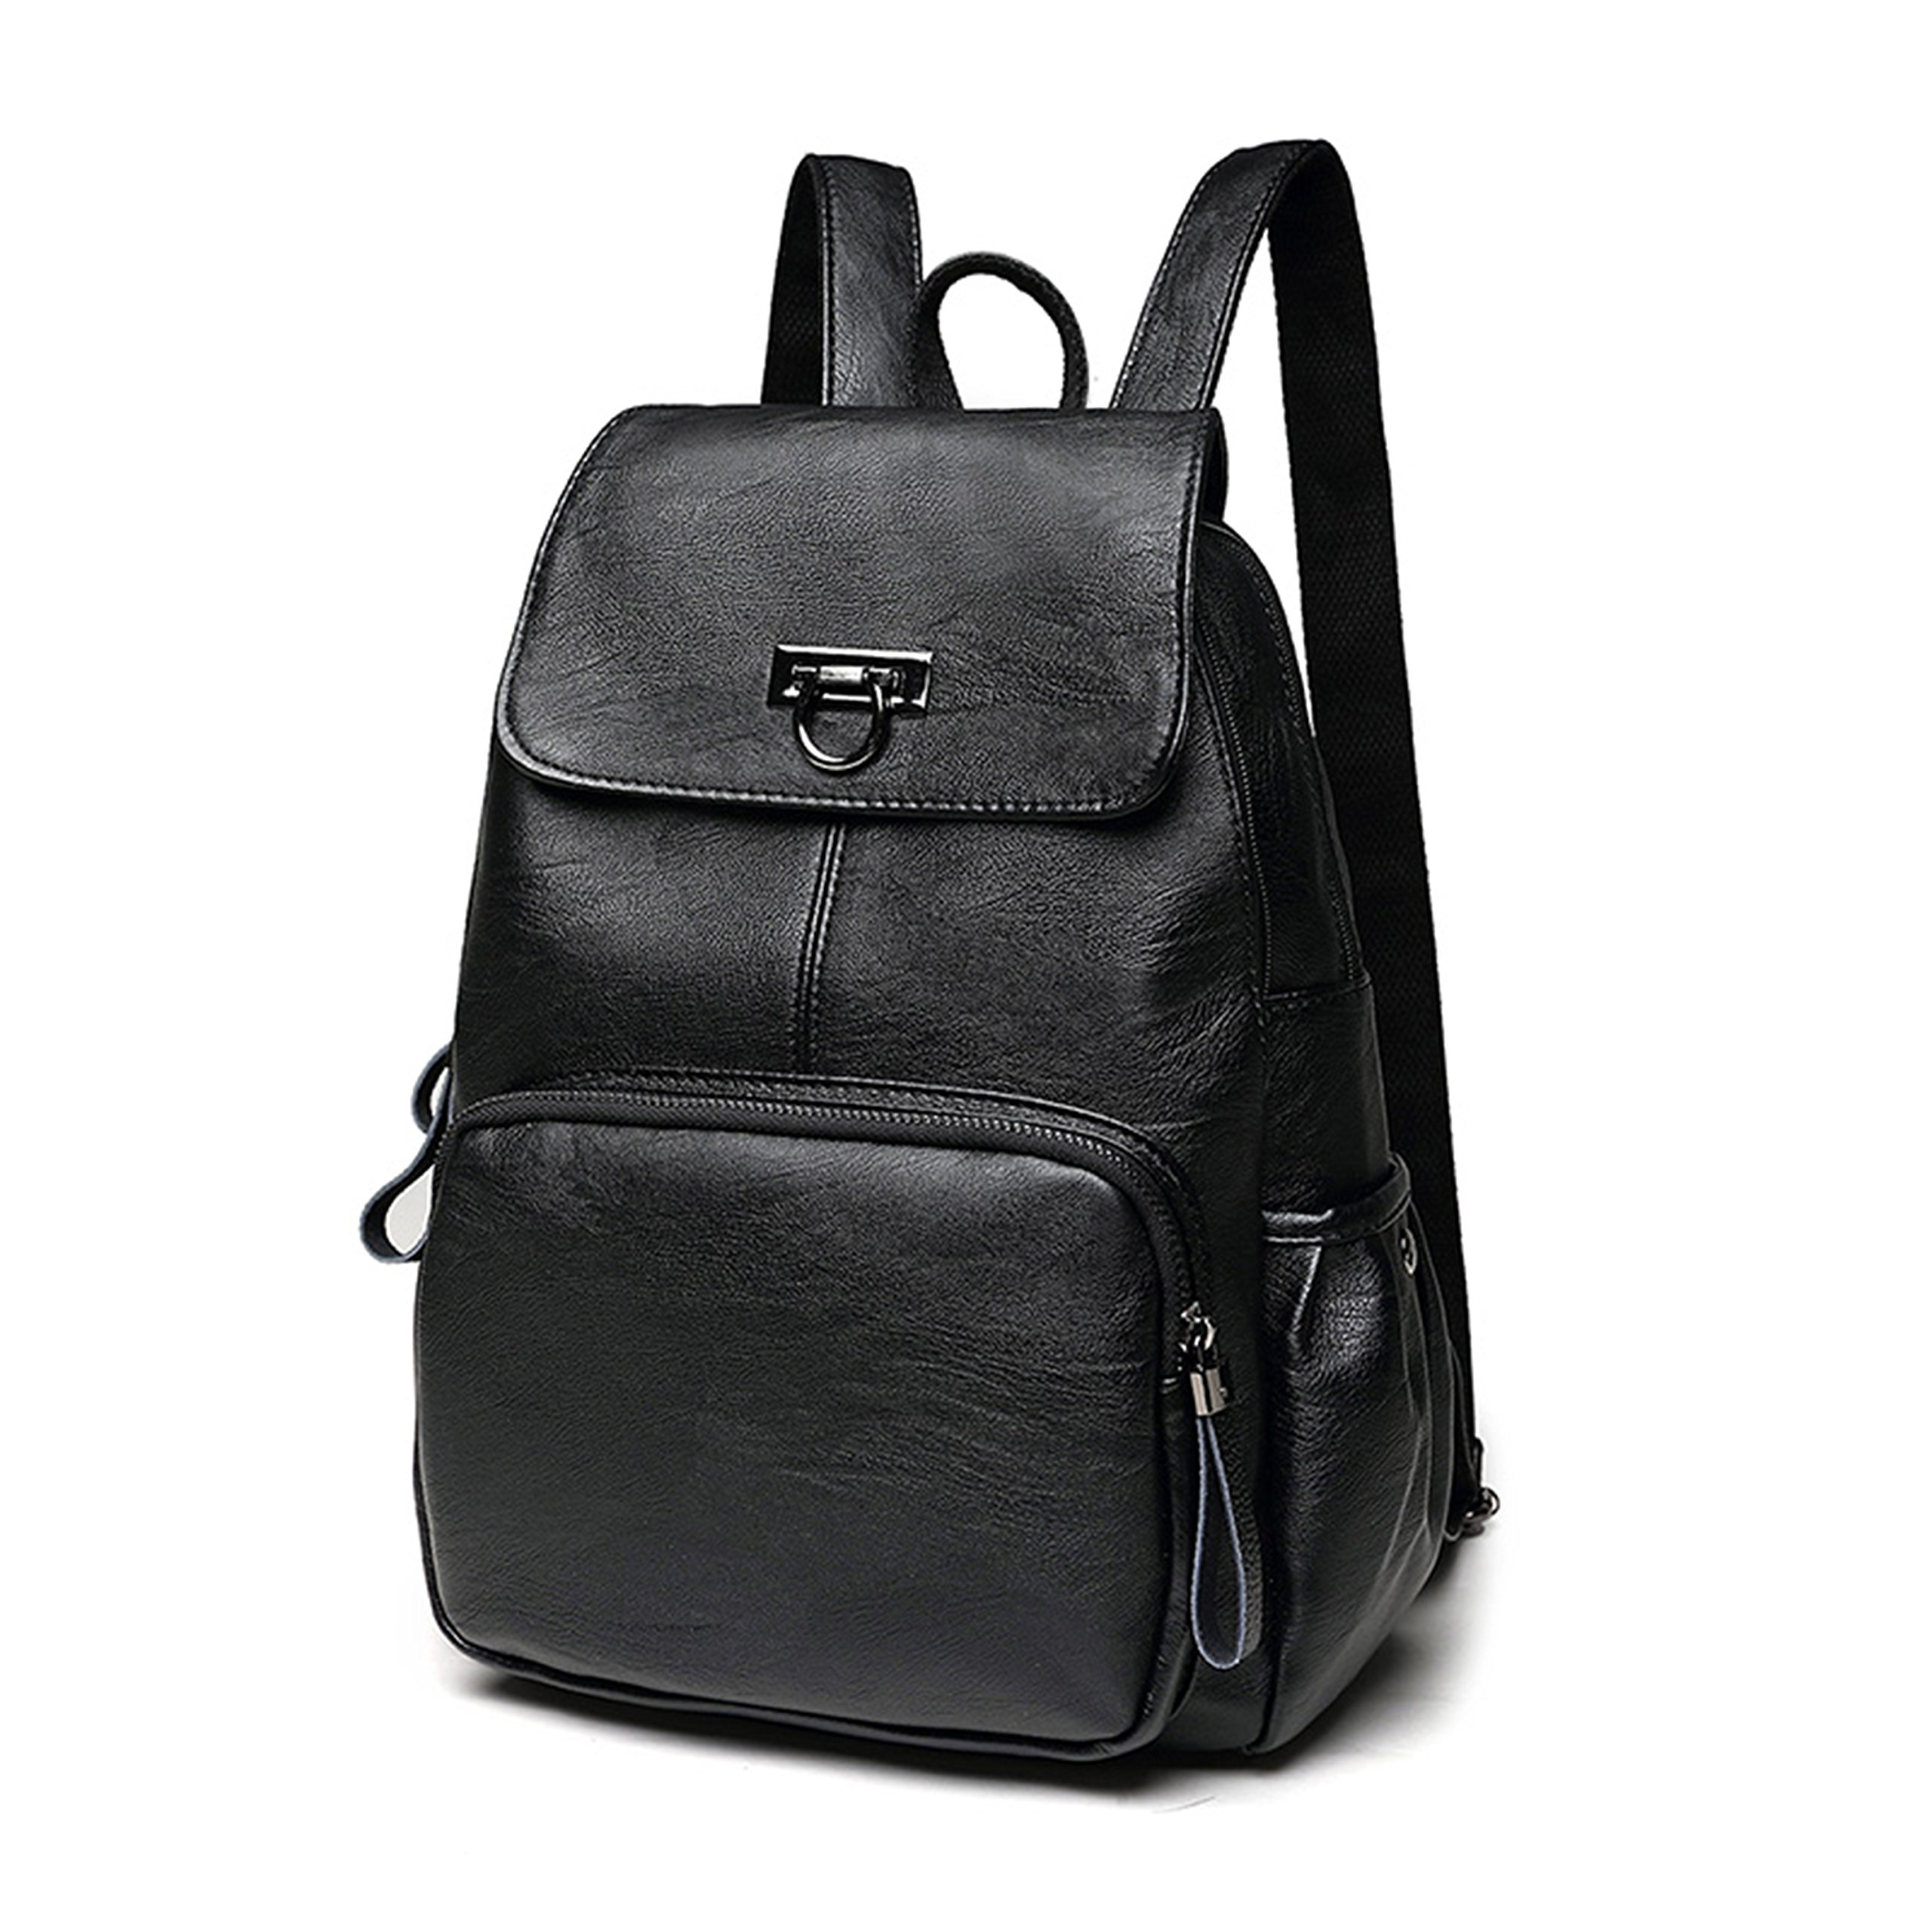 FIGROL Leather Backpack Fashion Mini School Handbag Stylish Lovely for Women, Ladies and Girl